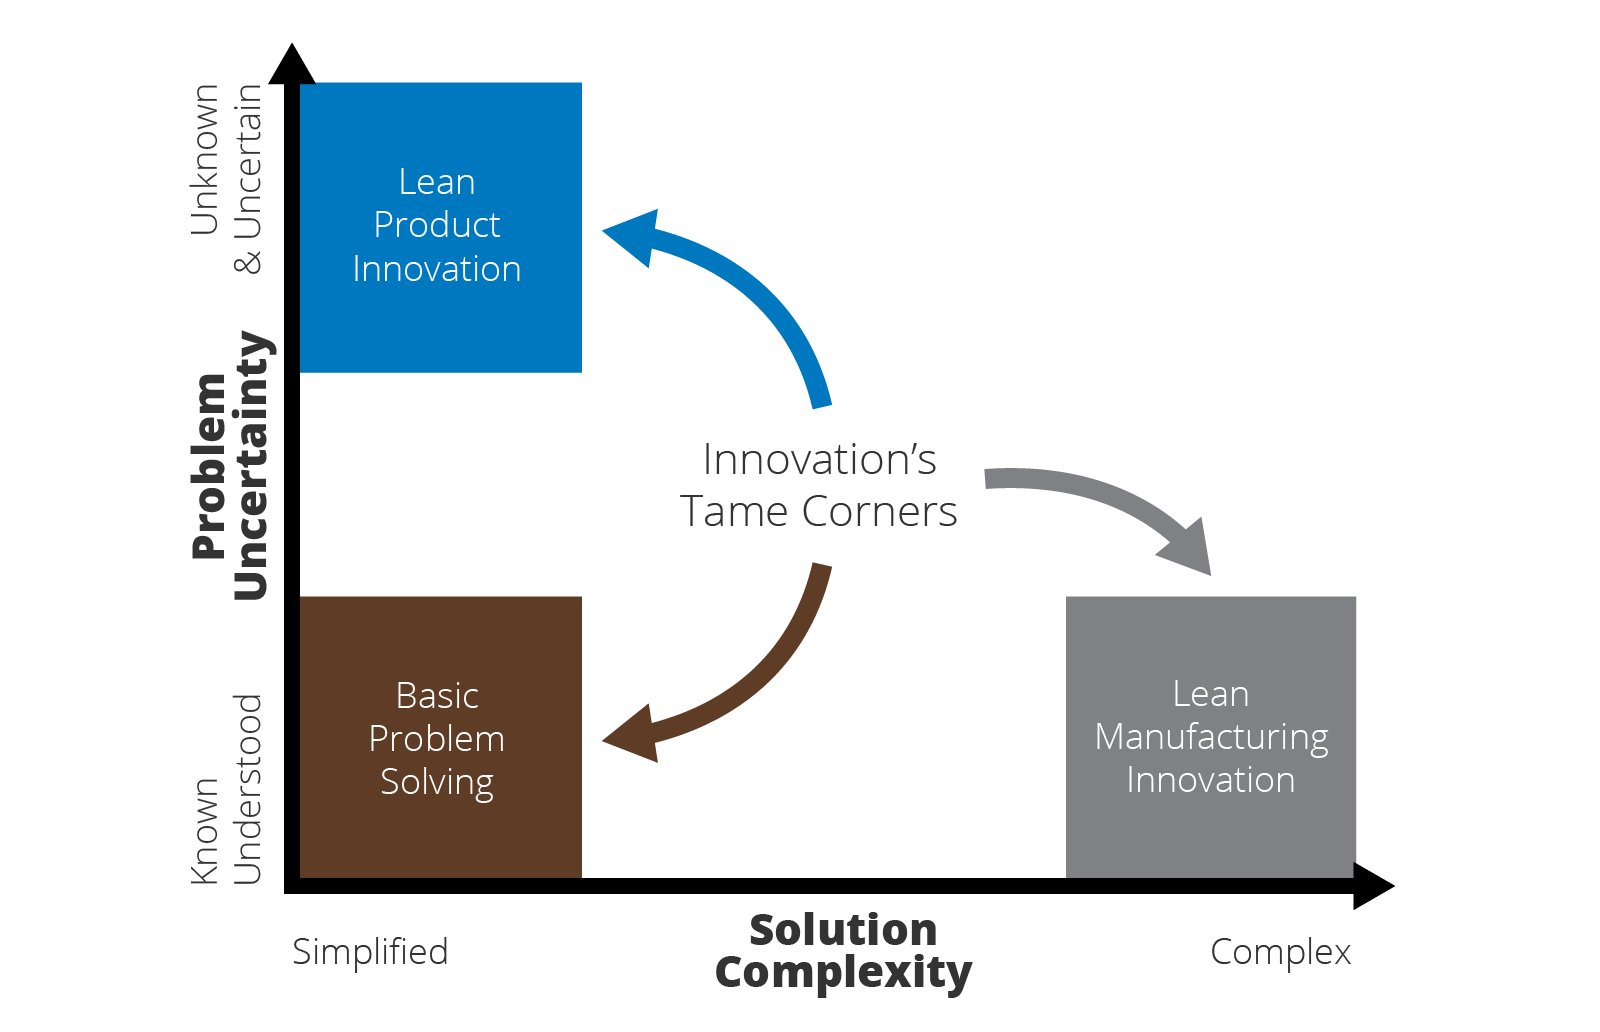 Innovation Complexity